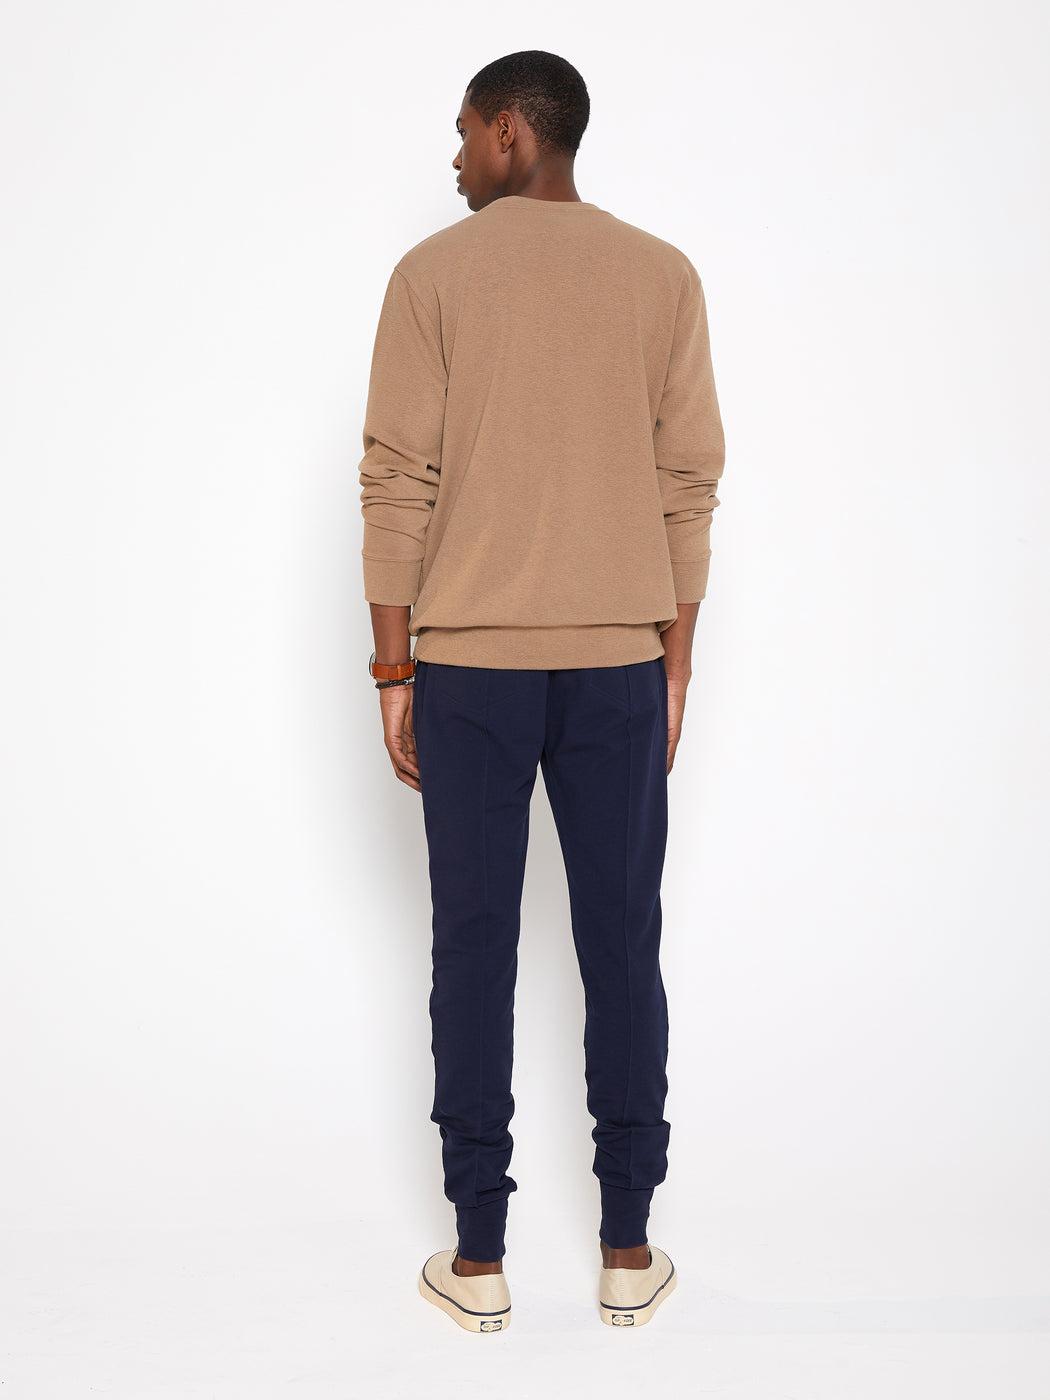 Model wearing Men Pocket Blocked Sweatshirt in Orange/ Camel (Back View)